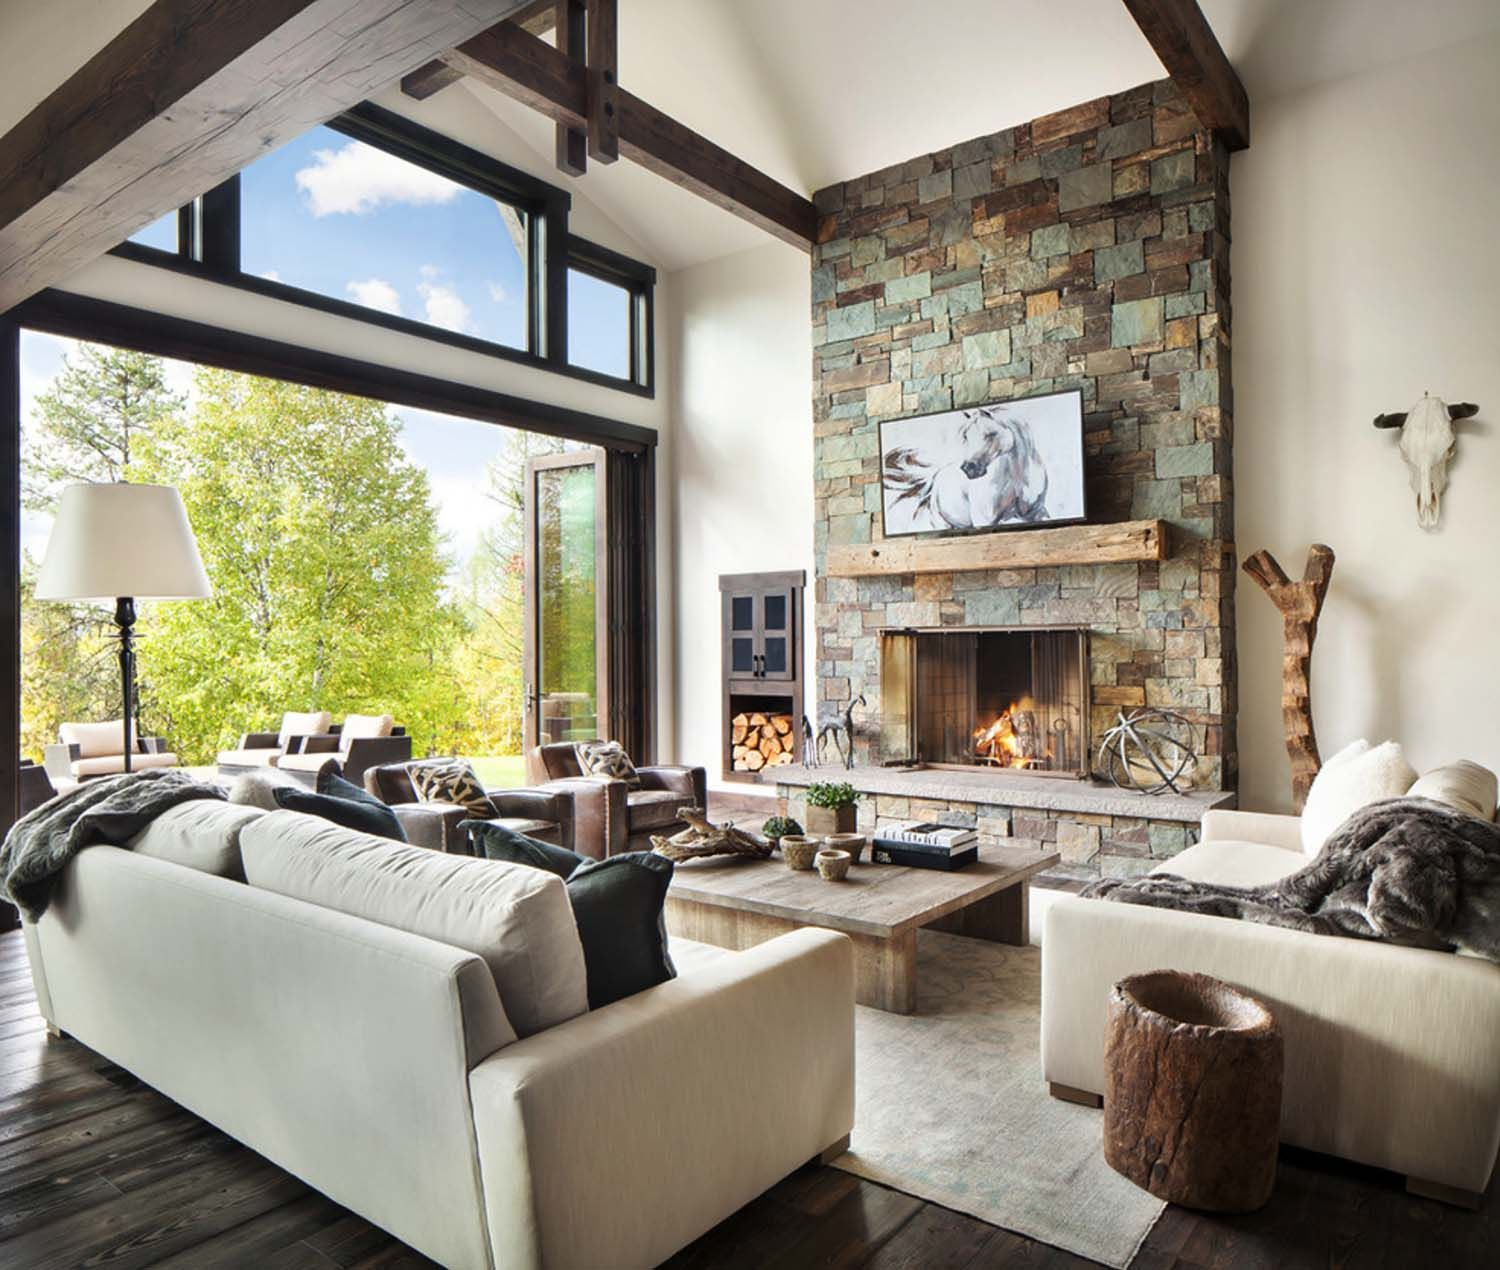 Interior Design Ideas For Homes: Rustic-modern Dwelling Nestled In The Northern Rocky